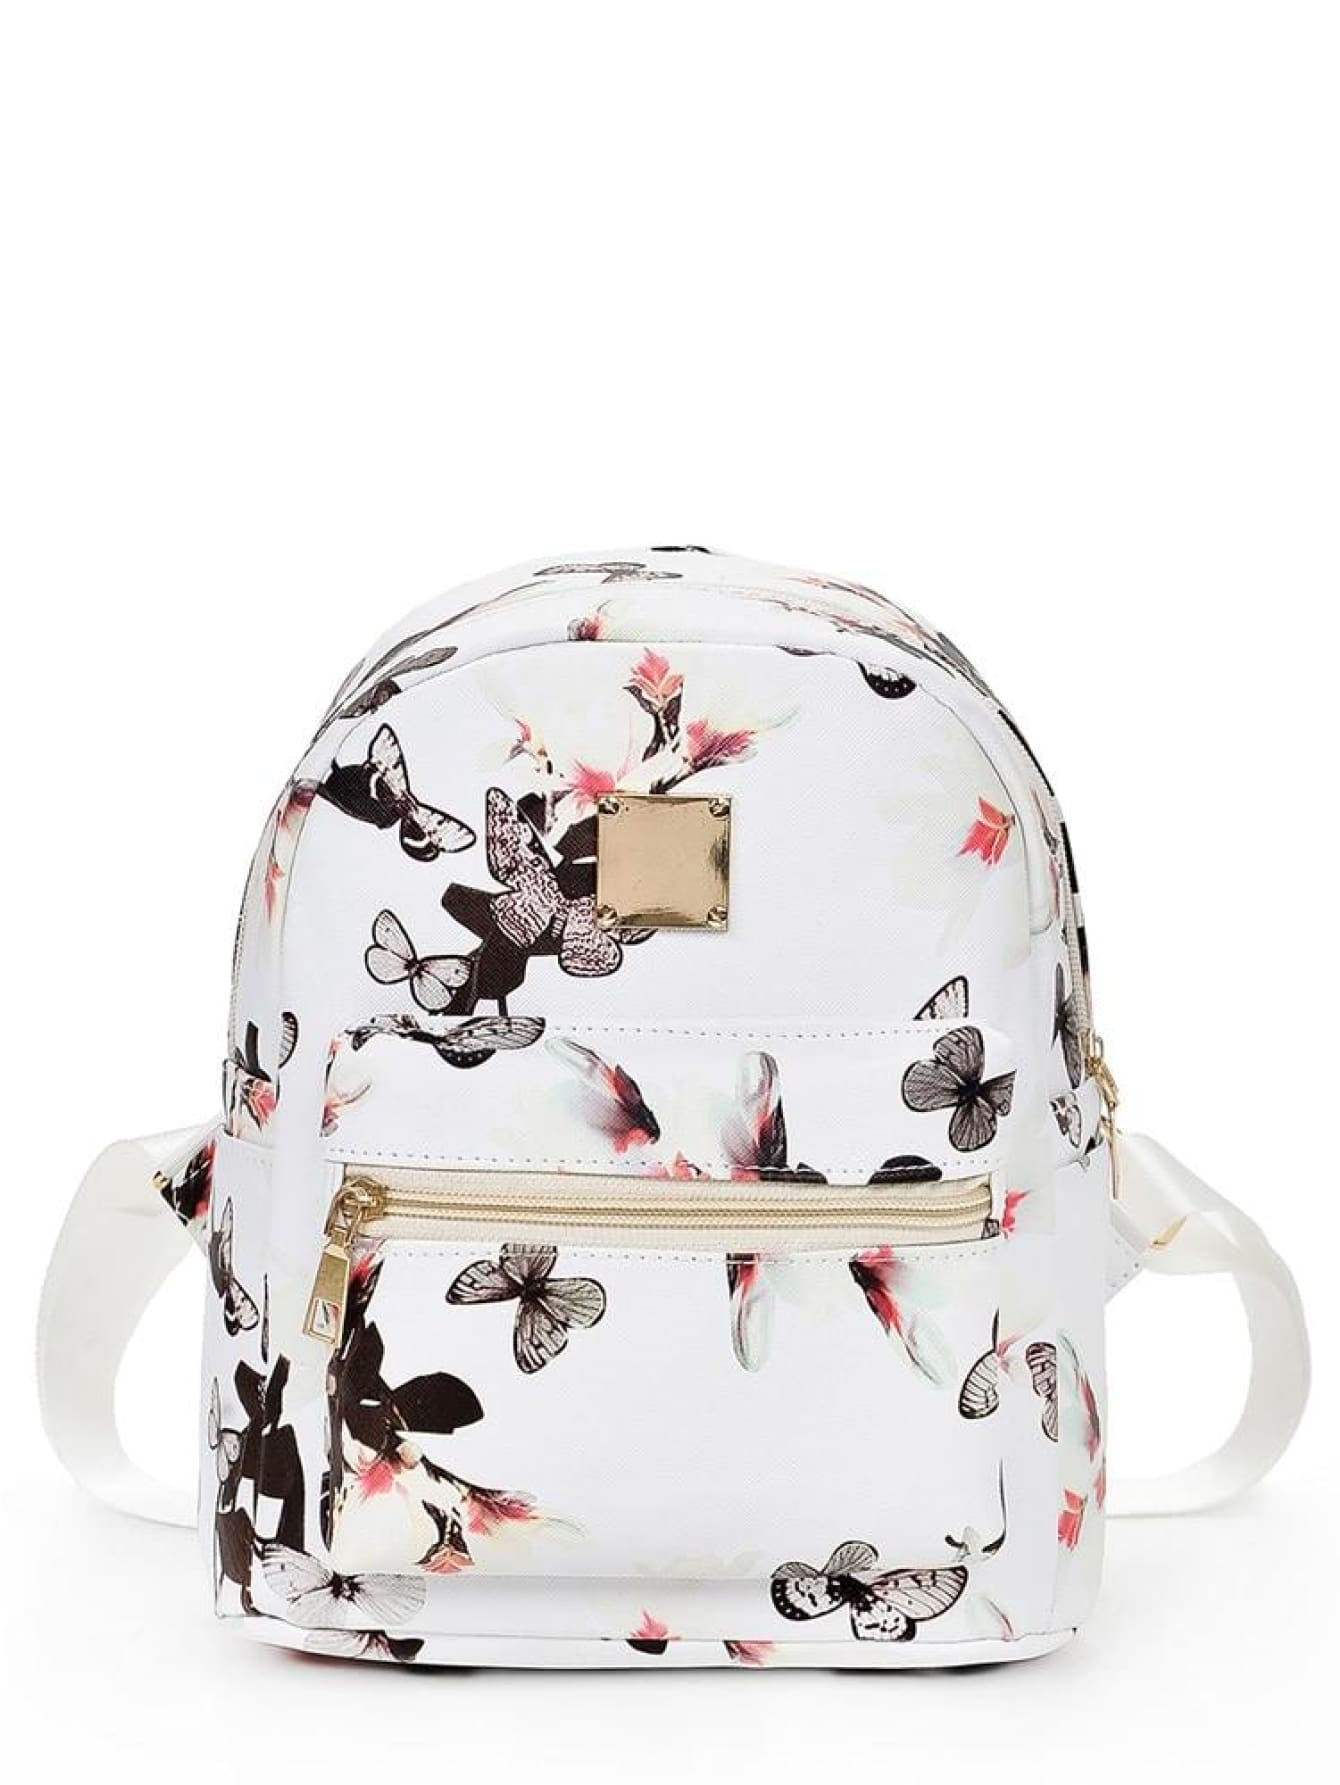 Vintage Flower Print Backpack - Womens Bag